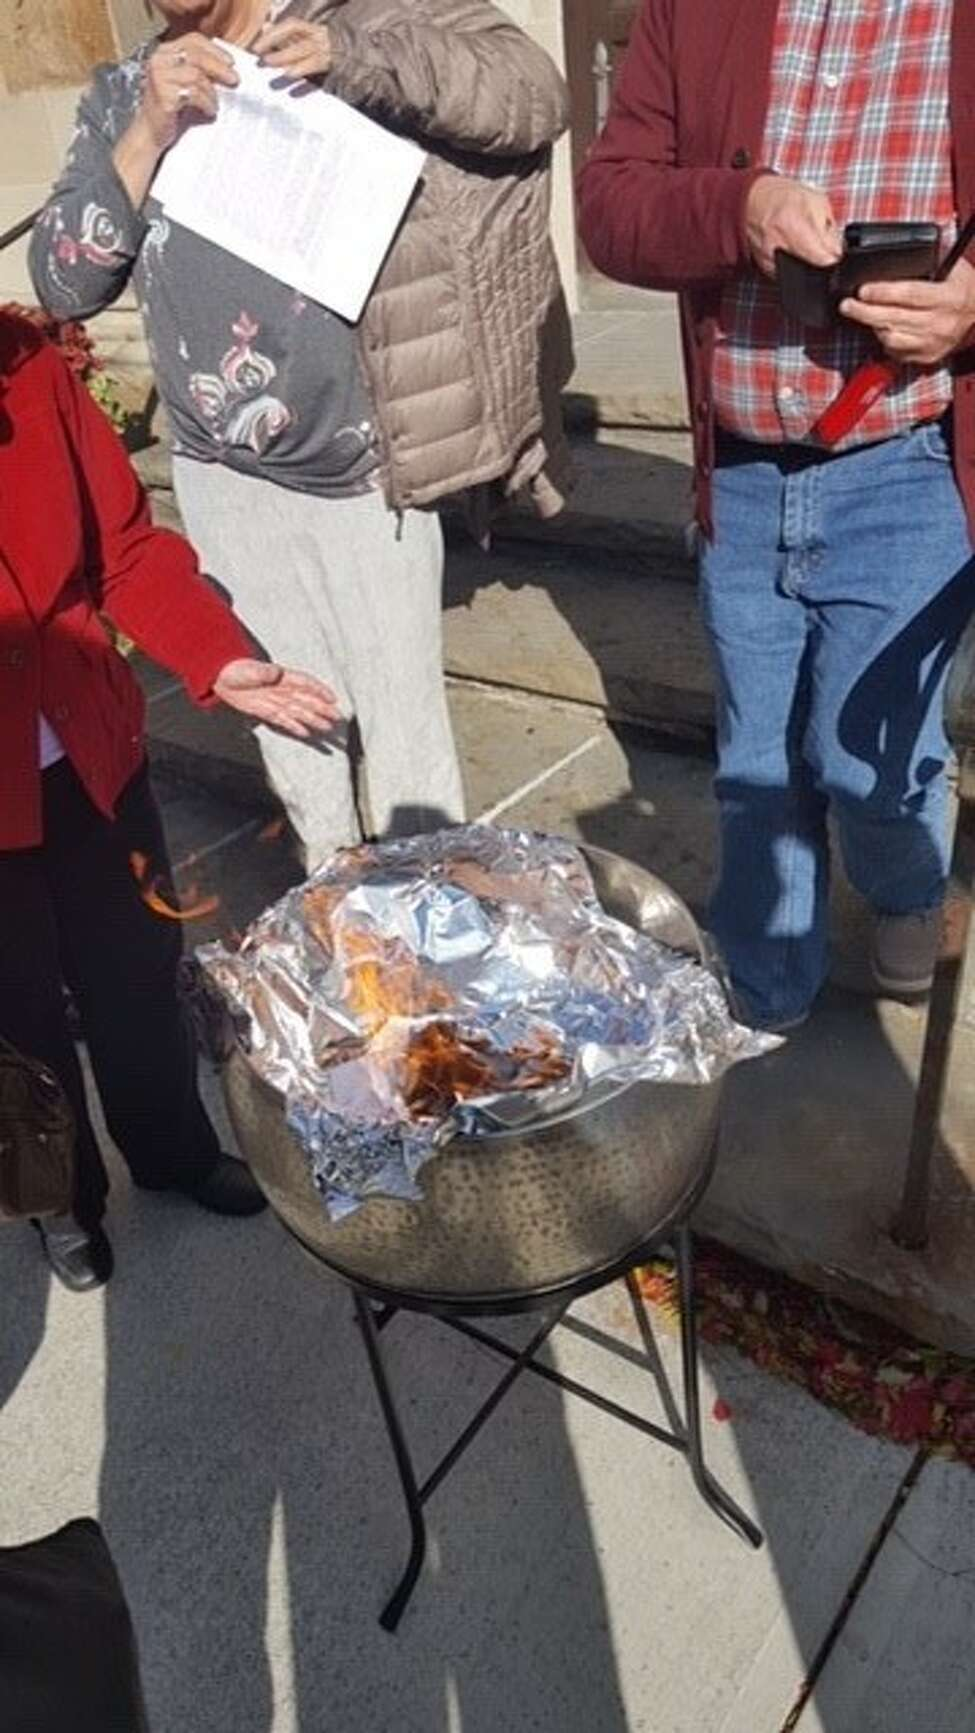 Parishioners at St. Andrew's in Albany said they ceremonially burned a copy of Bishop William Love's letter that banned same-sex marriage in the Albany Episcopal Diocese. The parishioners lit it on fire outside while it was being read inside St. Andrew's on Sunday, Nov. 11, 2018 at St. Andrew's Episcopal Church in Albany.